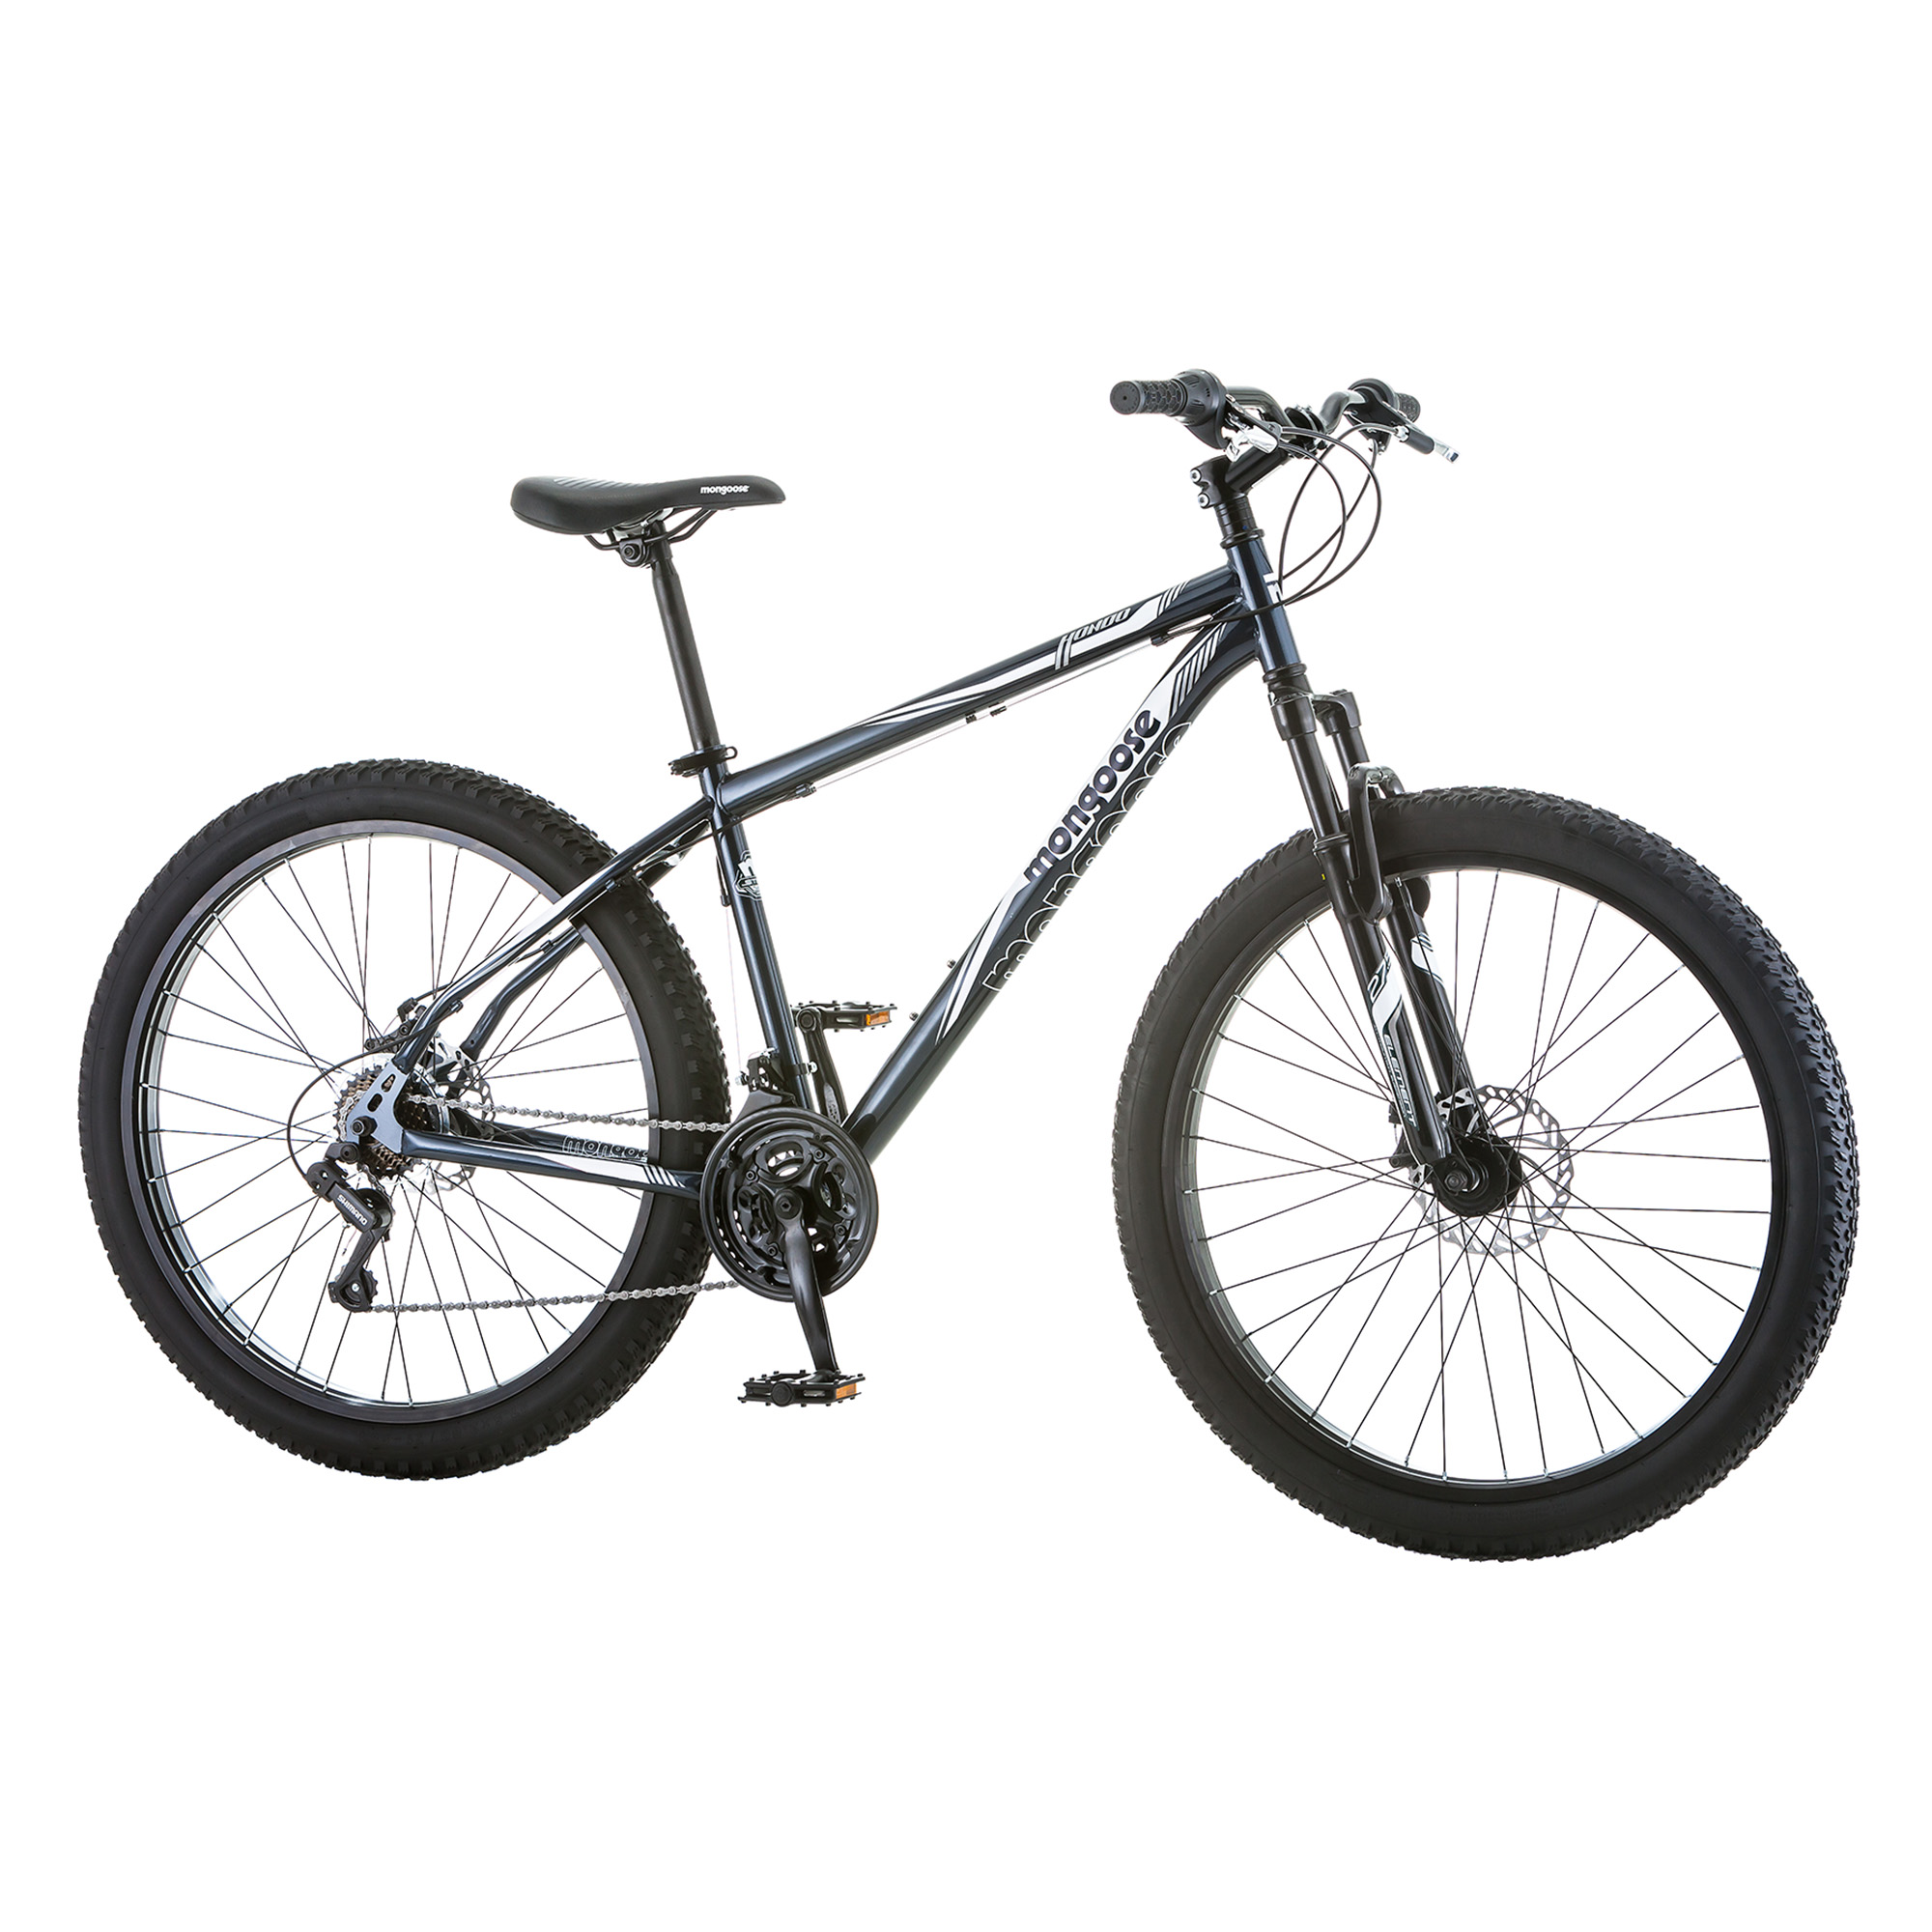 Buy 24 Mongoose Ledge 21 Boys Mountain Bike SilverRed at Walmartcom